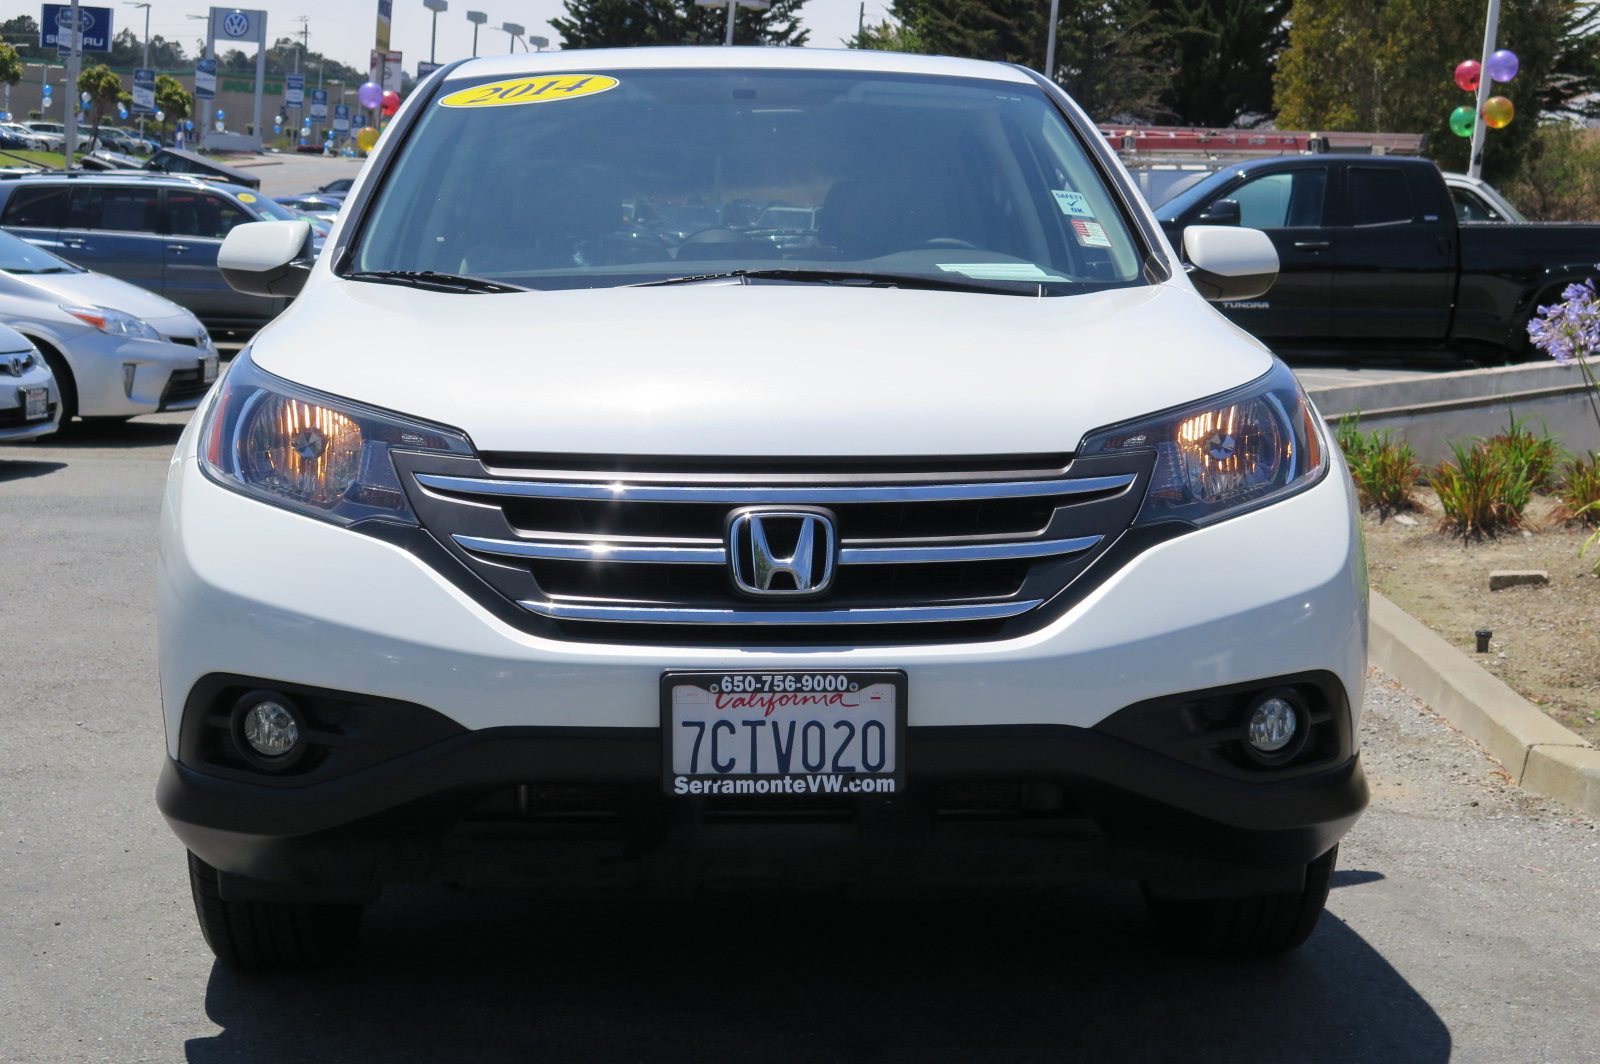 2014 HONDA CR-V CR-V white 24l inline 4 automatic retained accessory power  rear wiper  powe